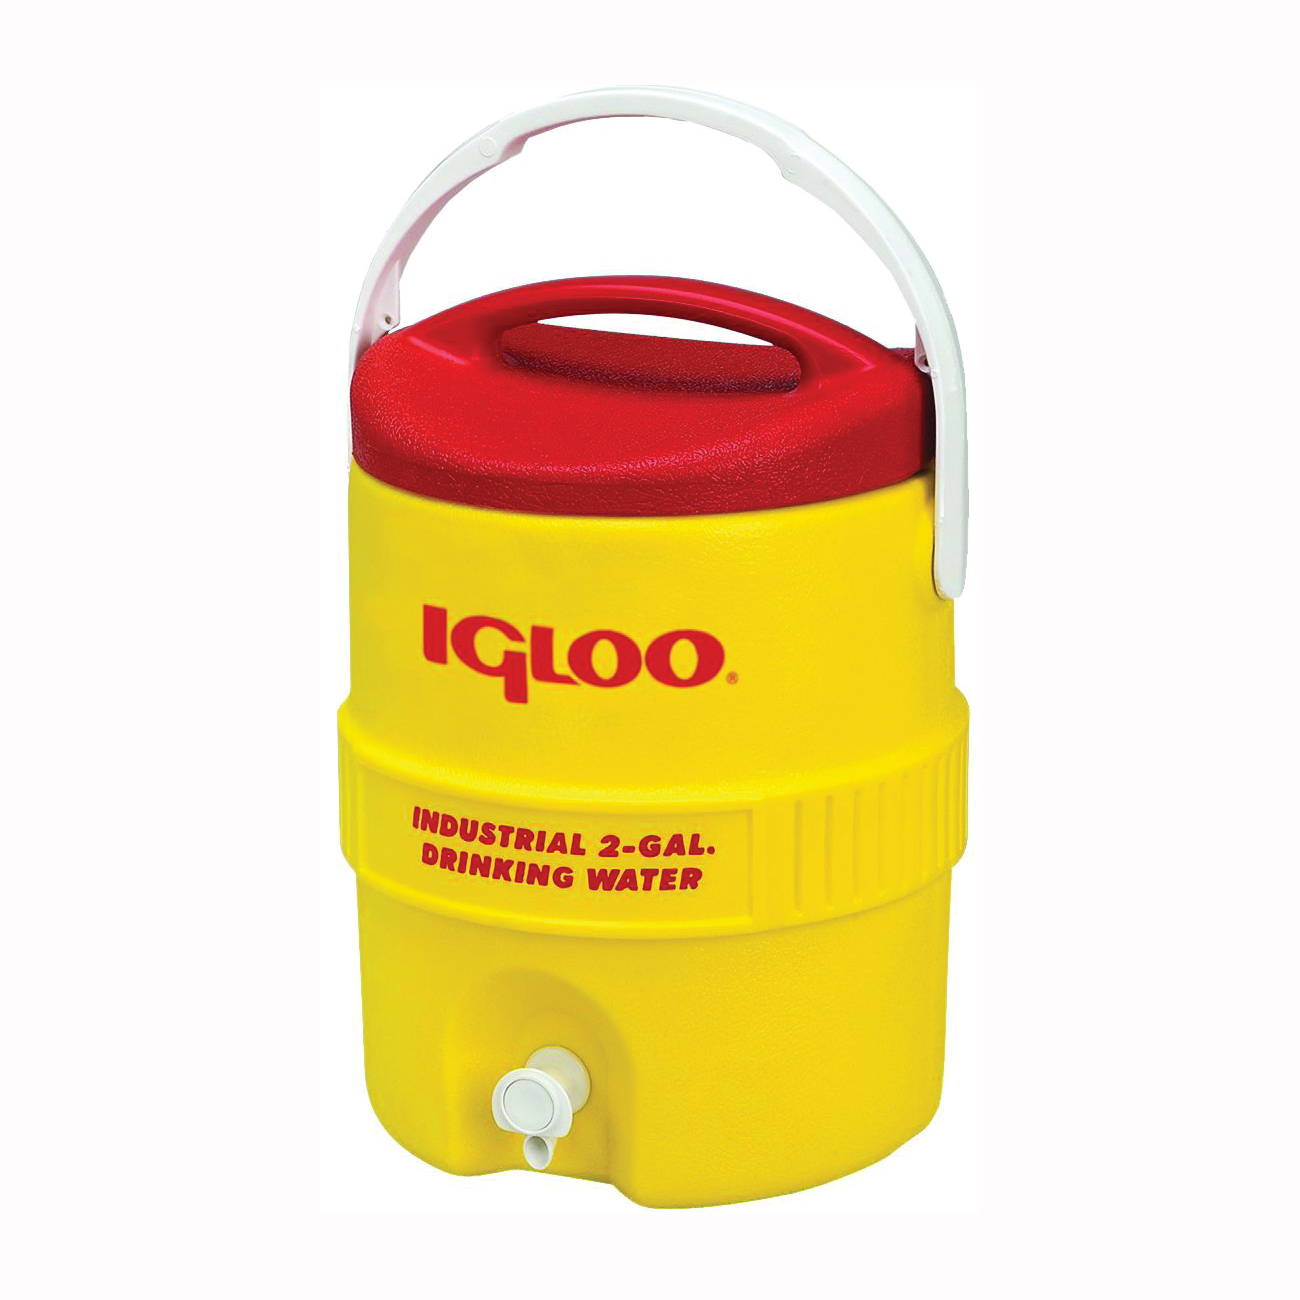 Picture of IGLOO 400 Series 00000421 Water Cooler, 2 gal Tank, Lever Spigot, Polyethylene, Red/Yellow